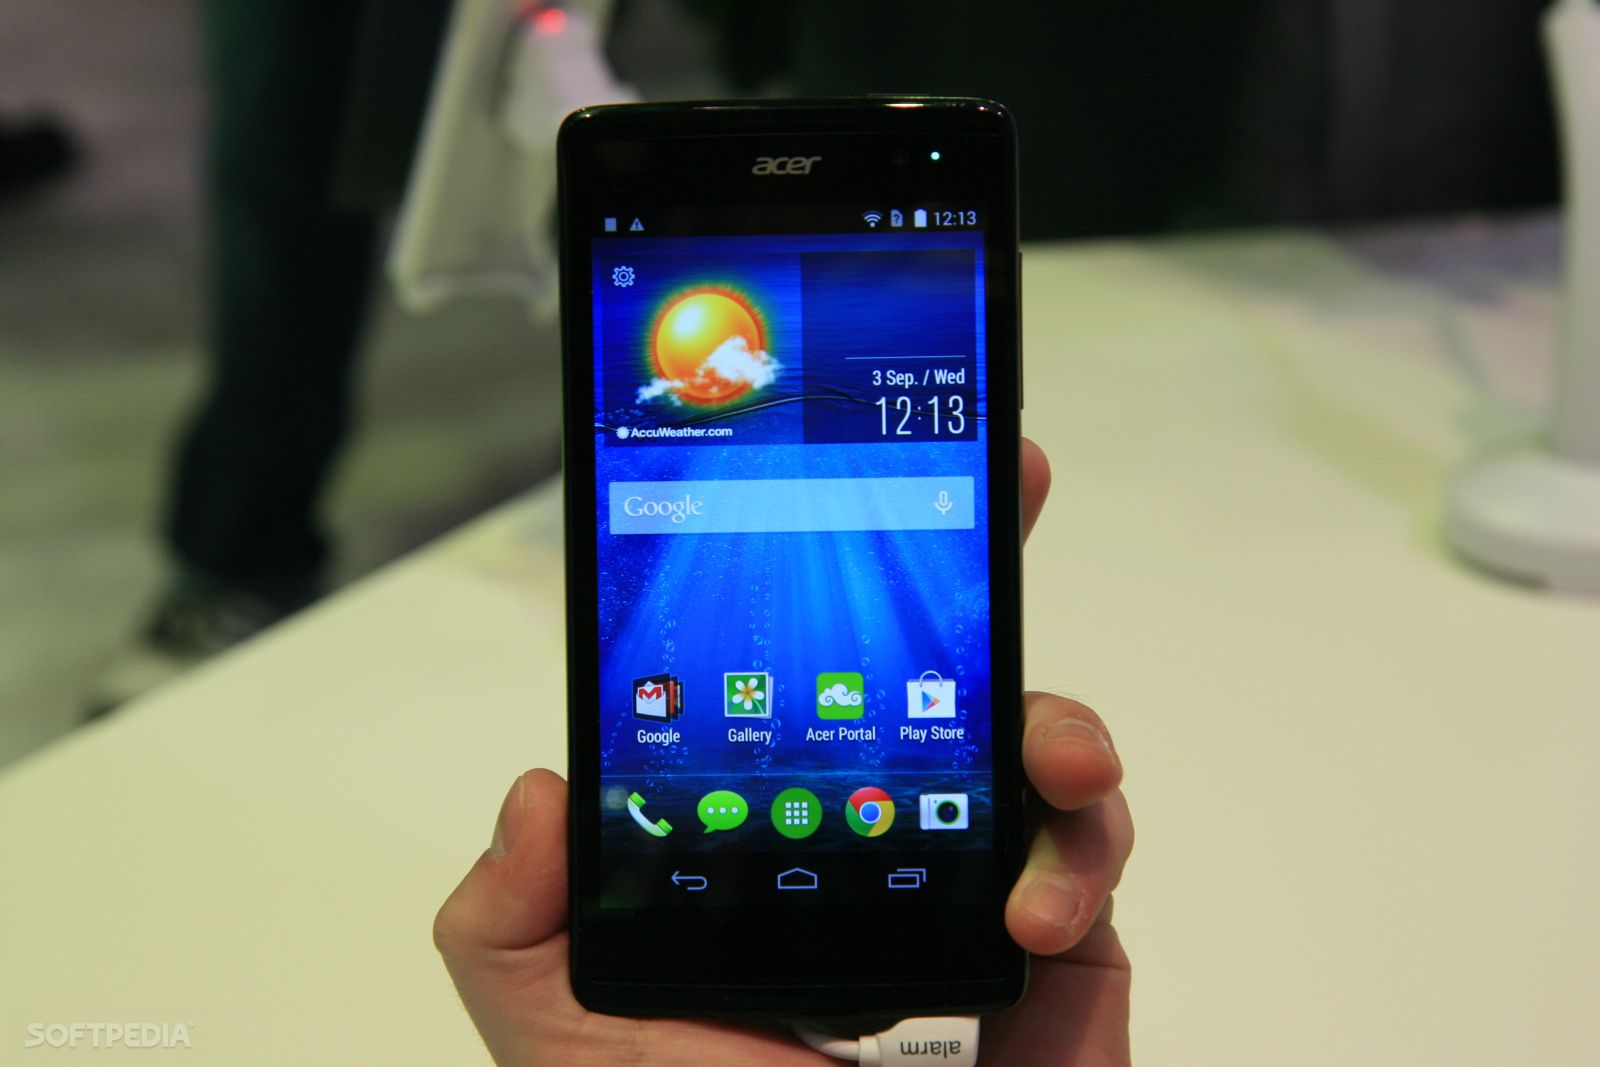 IFA-2014-Acer-Liquid-Z500-with-8MP-Camera-5-Inch-HD-Display-Officially-Introduced-Gallery-457492-4